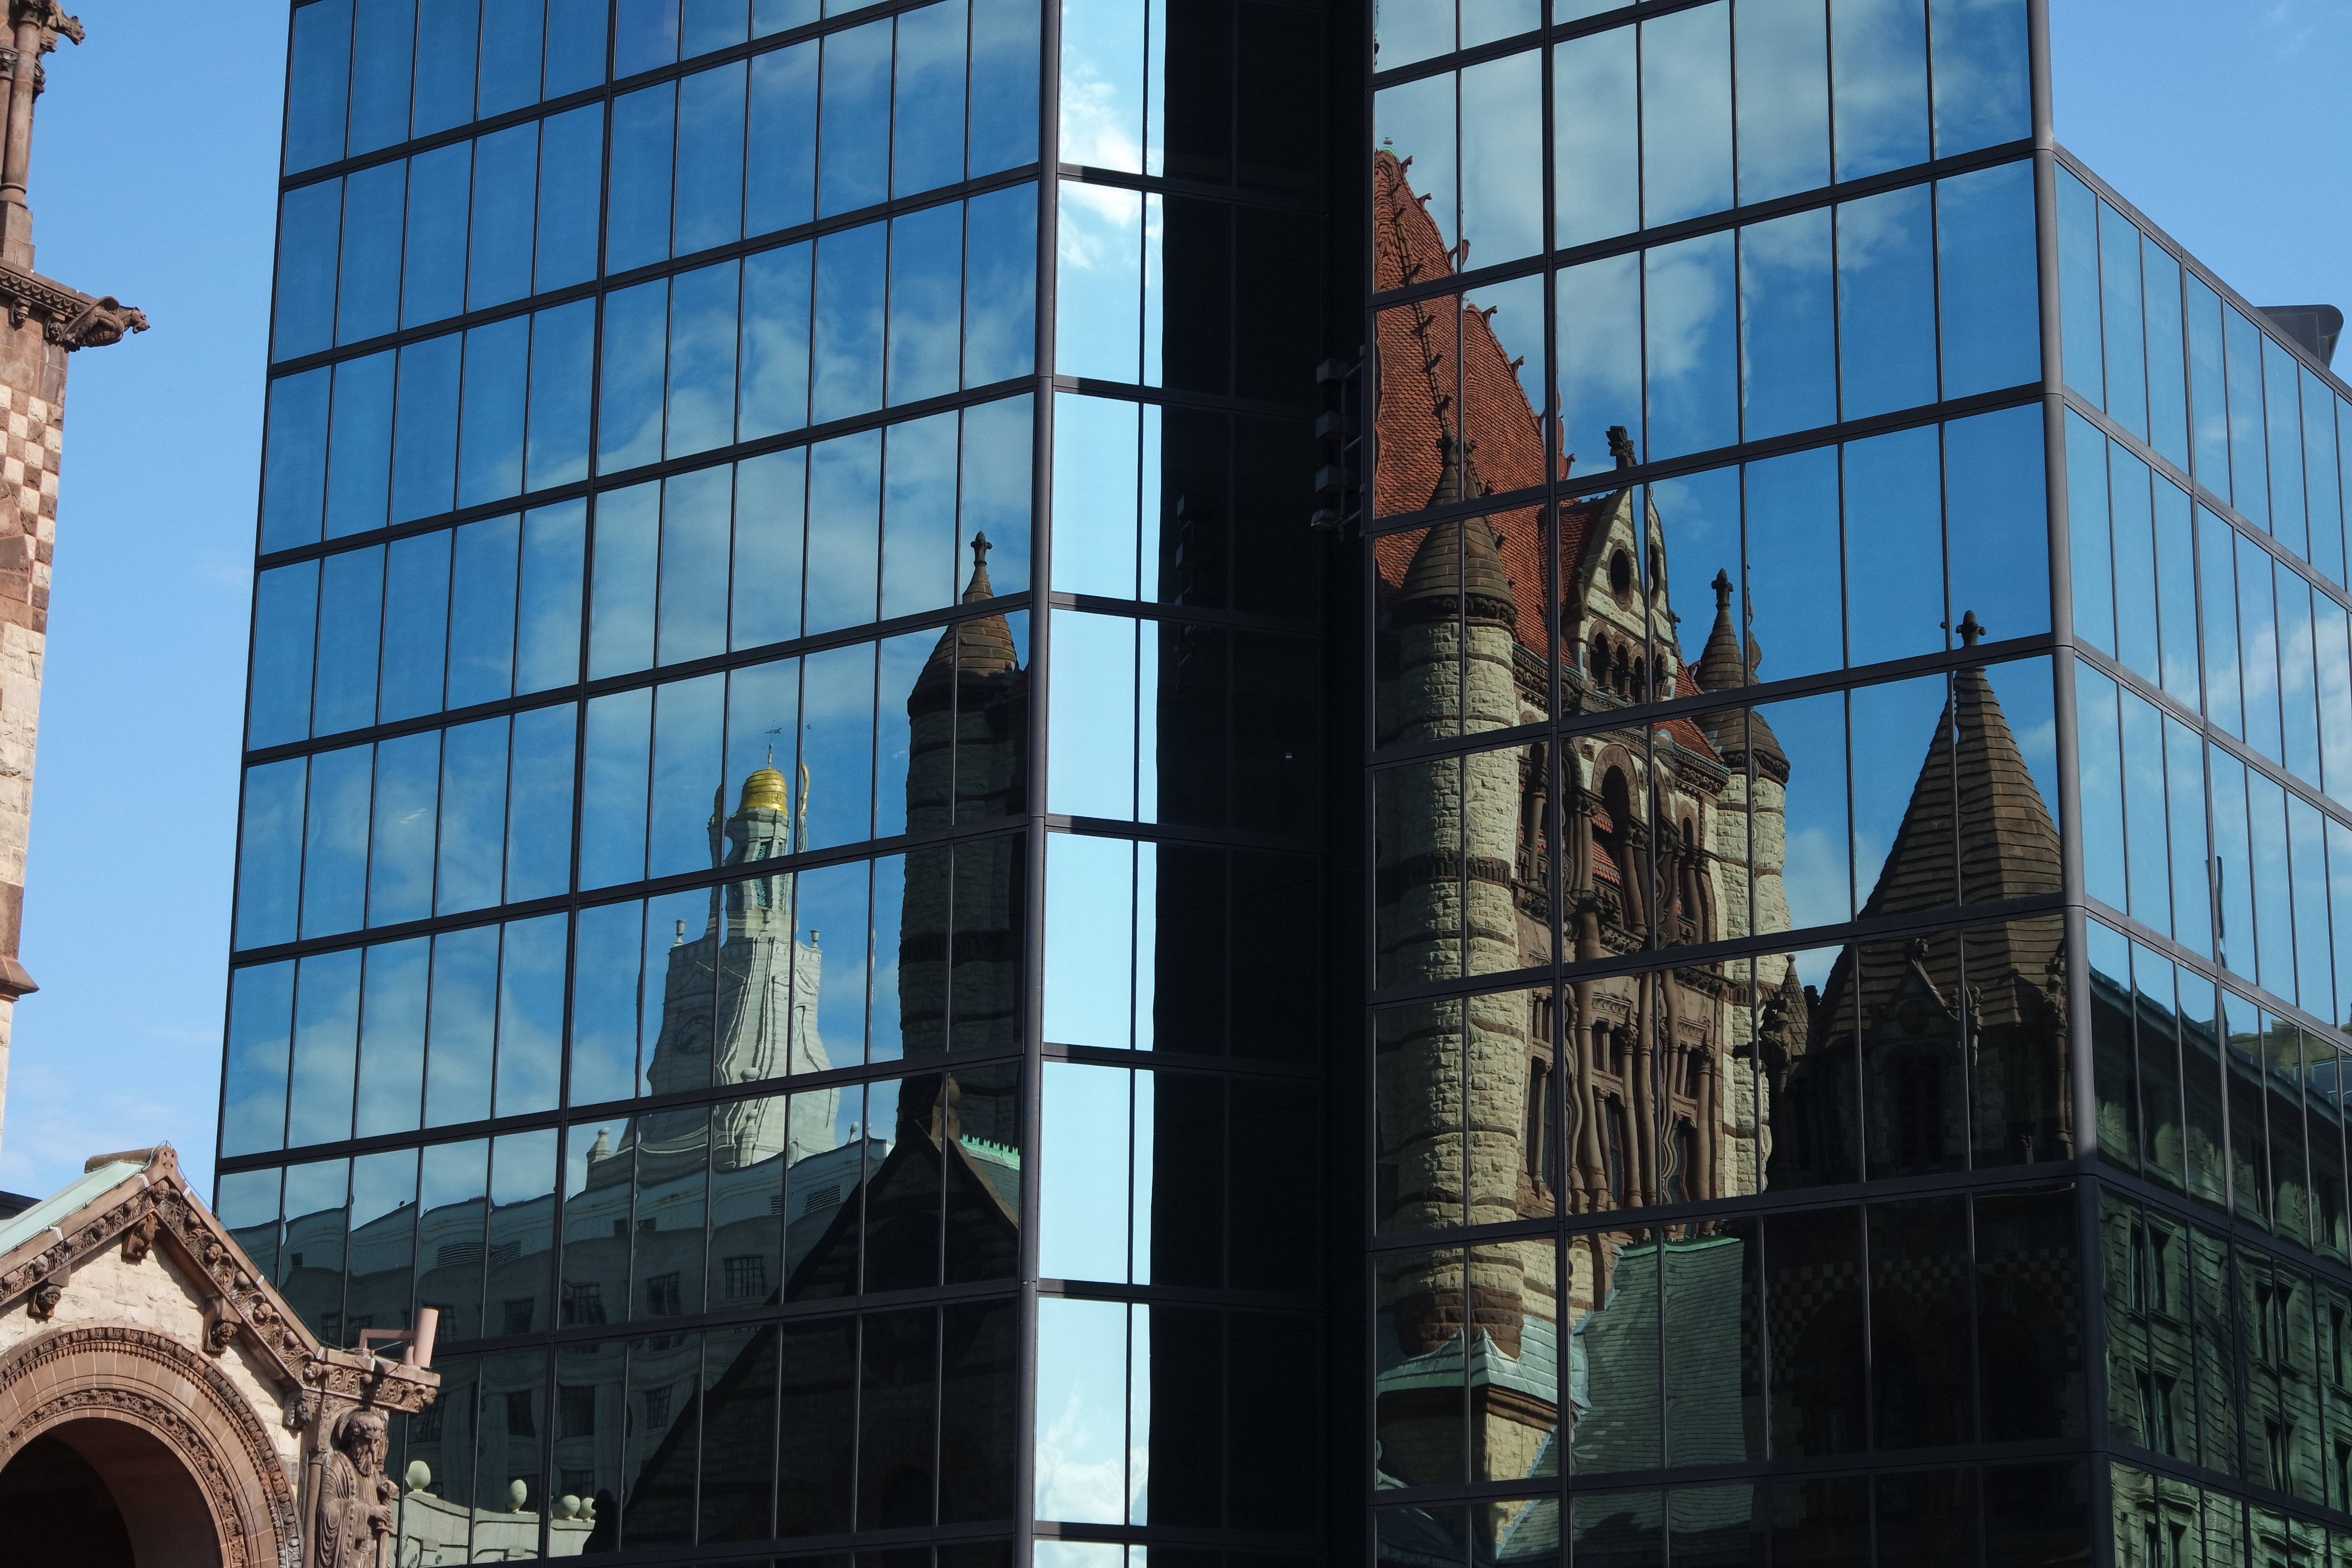 A sample photo of a church reflected in the Hancock building shot by the Samsung NX3000.